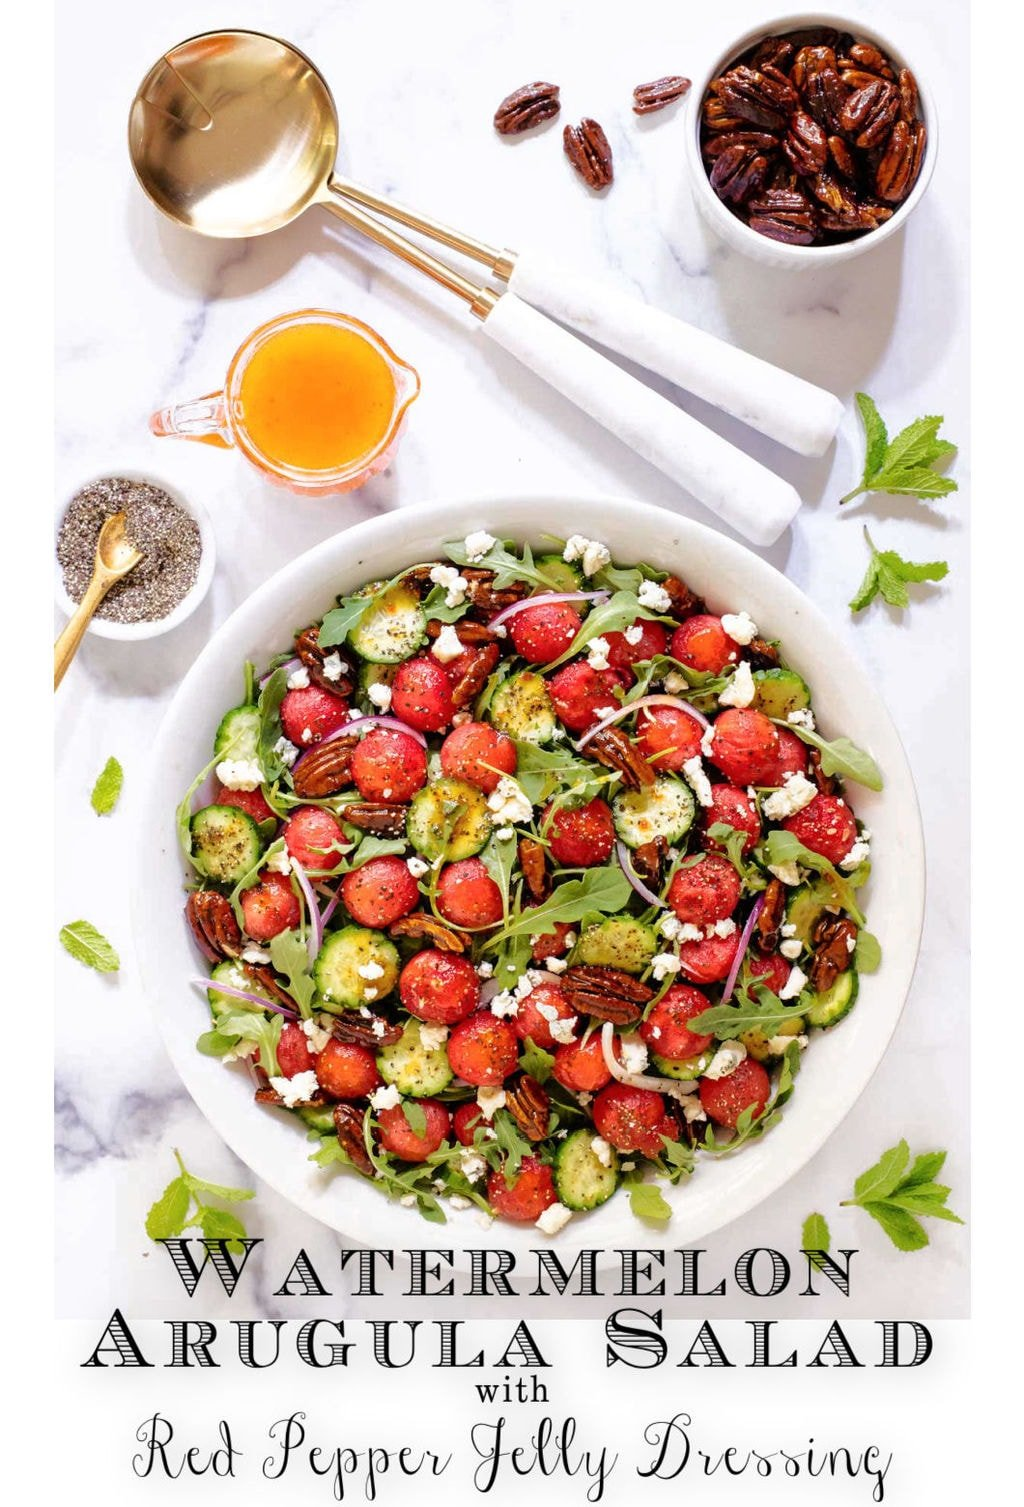 Watermelon Arugula Salad with Pepper Jelly Dressing